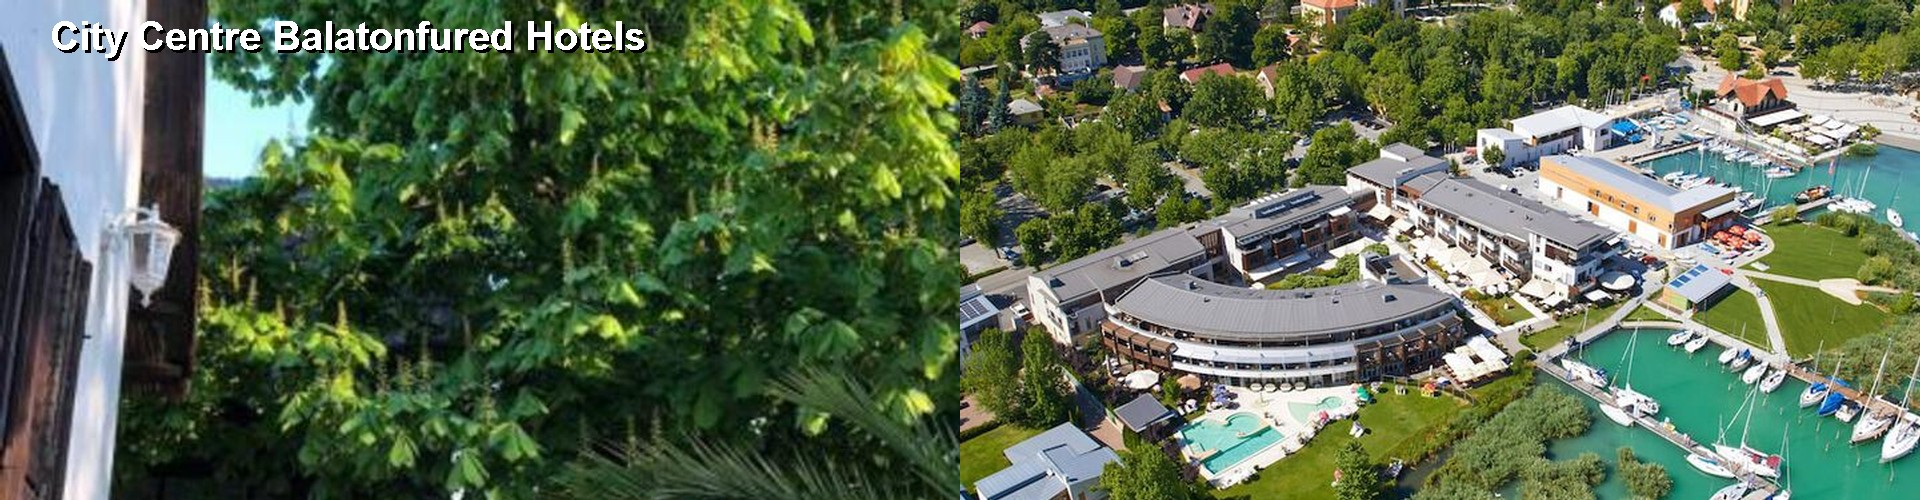 5 Best Hotels near City Centre Balatonfured